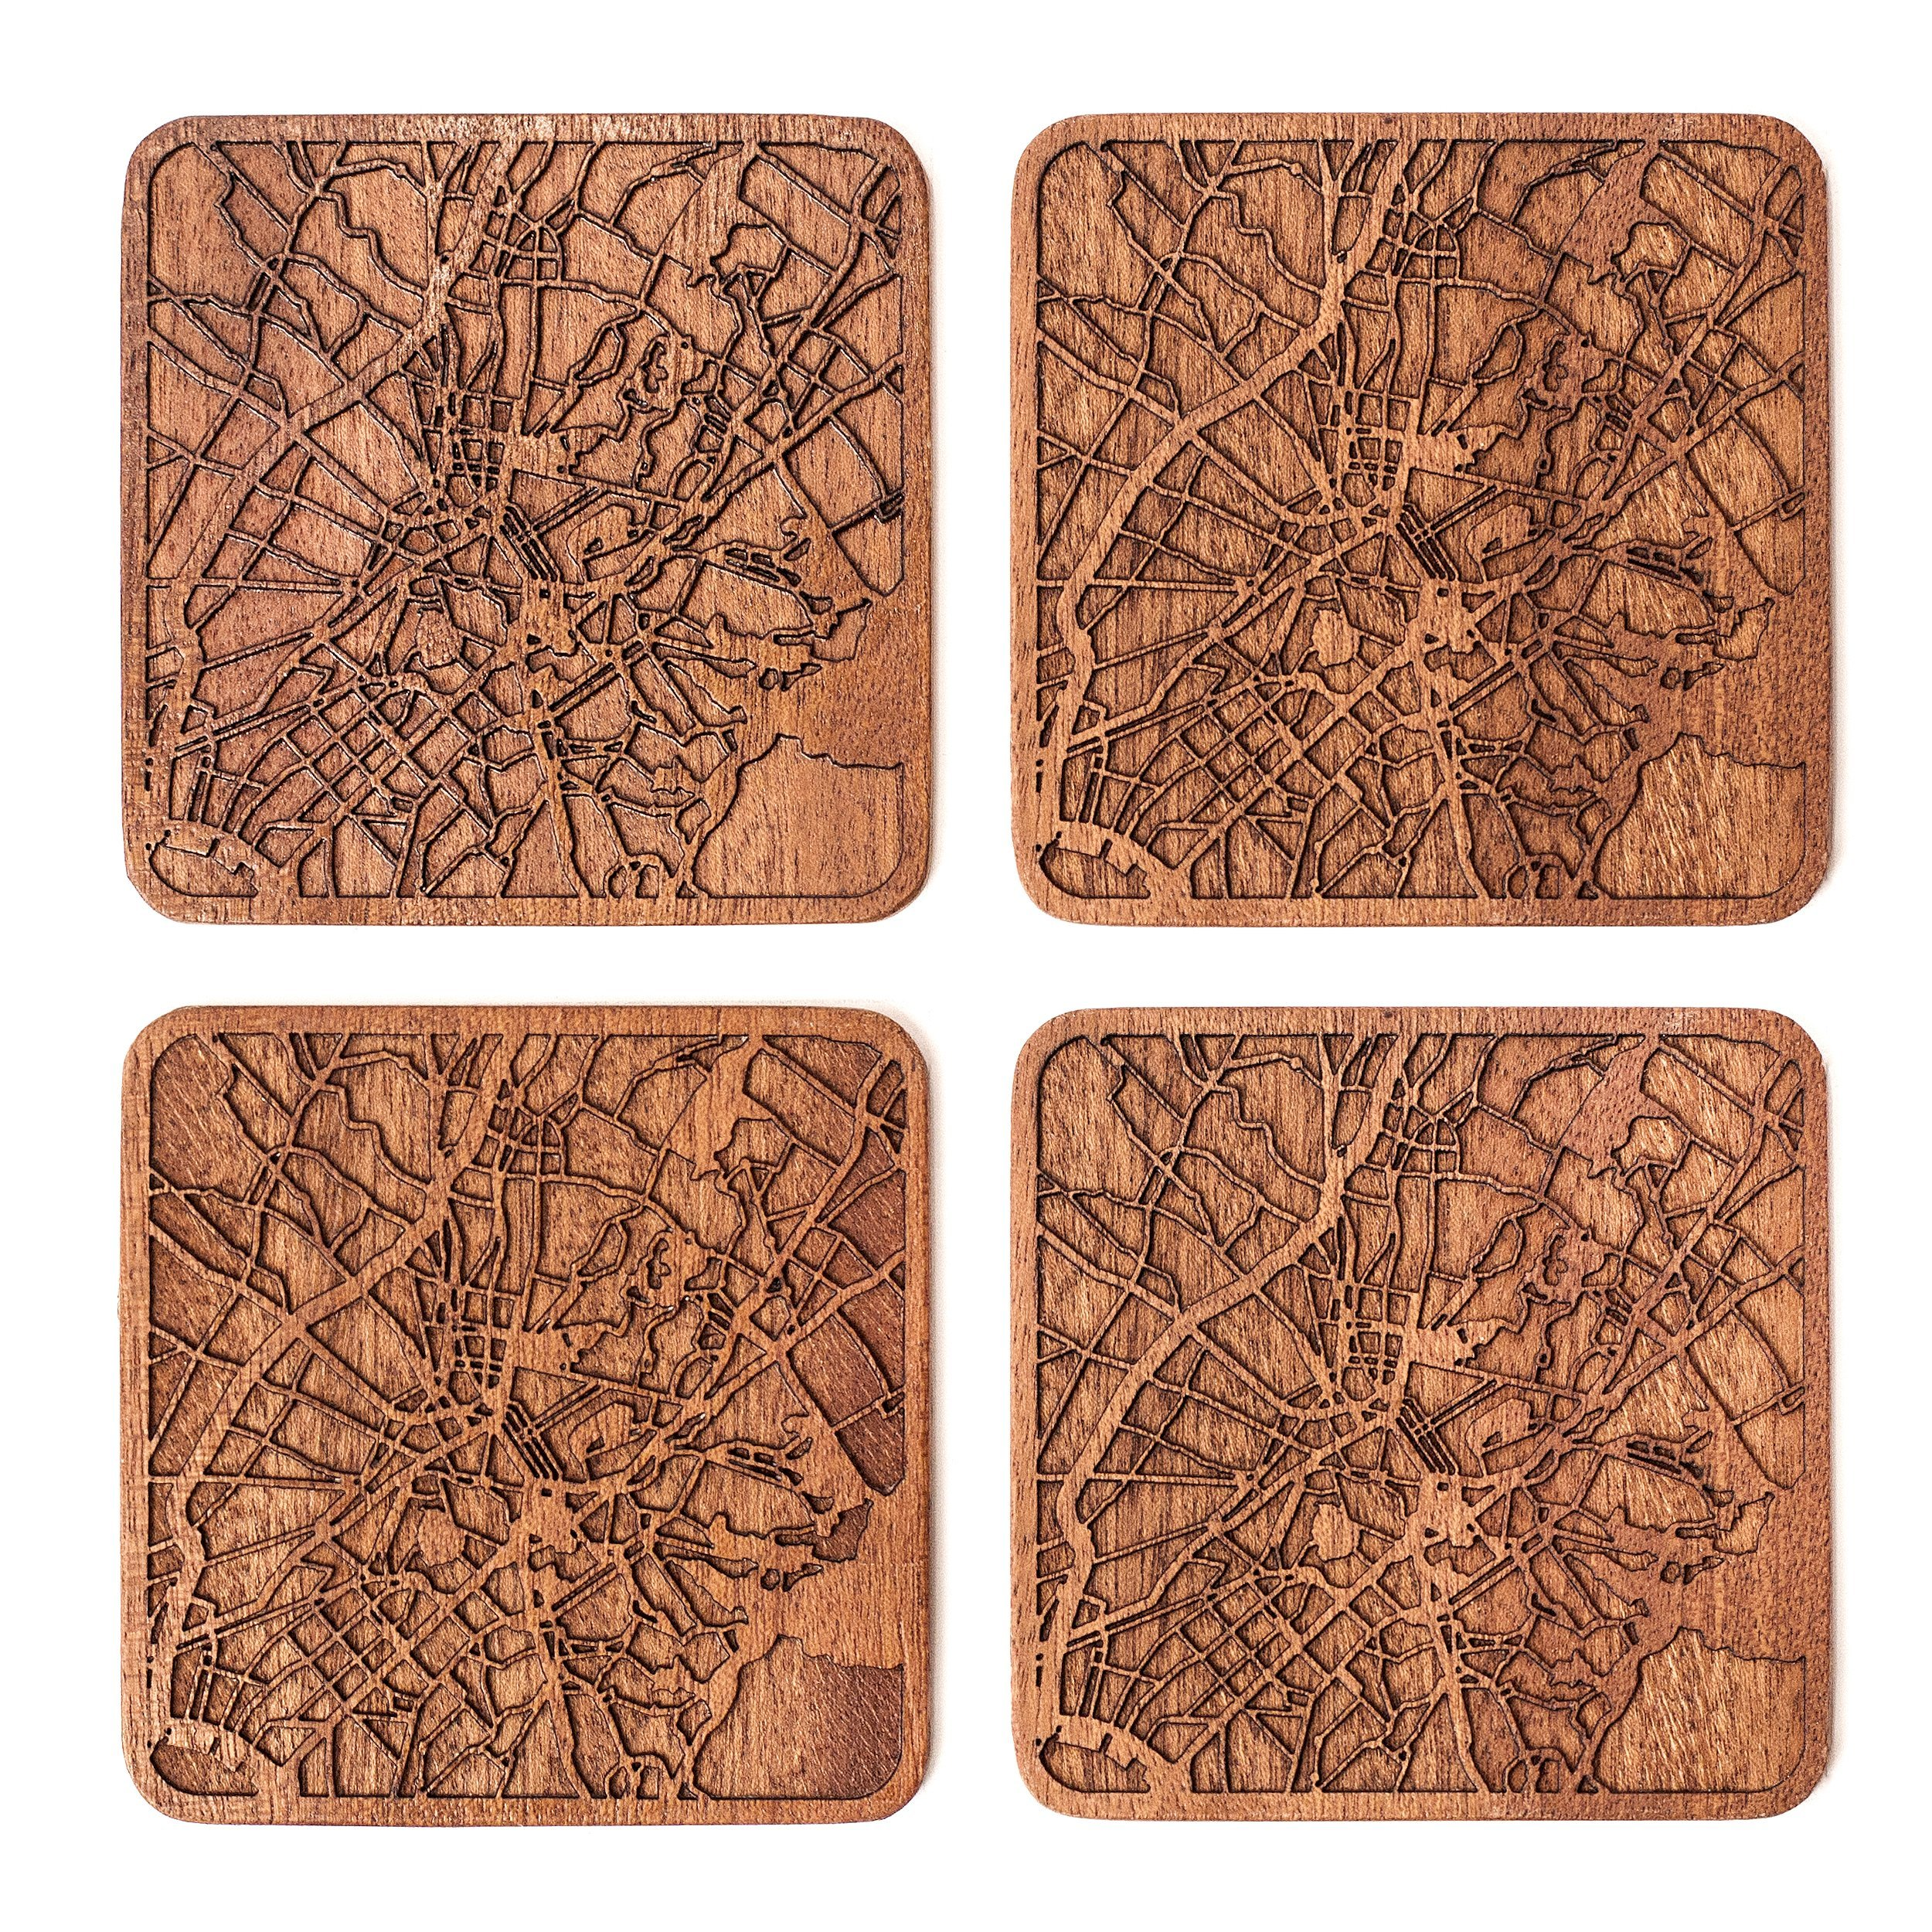 Athens Map Coaster by O3 Design Studio, Set Of